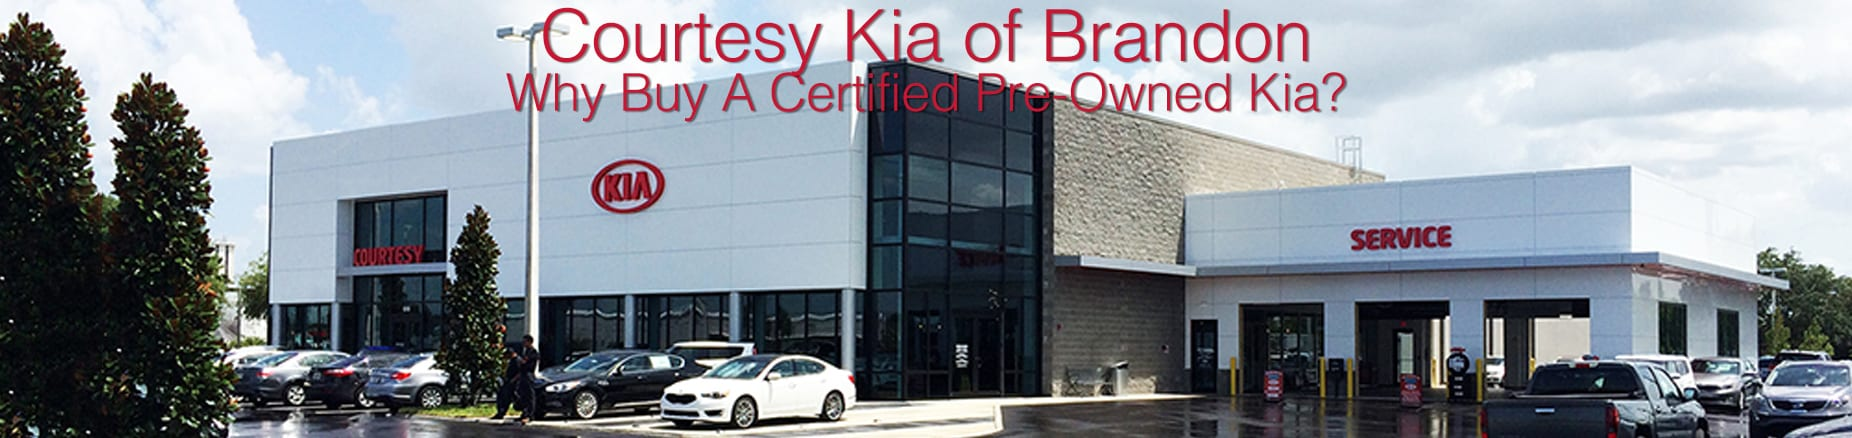 Courtesy Kia of Brandon Near Tampa Certified Pre-Owned